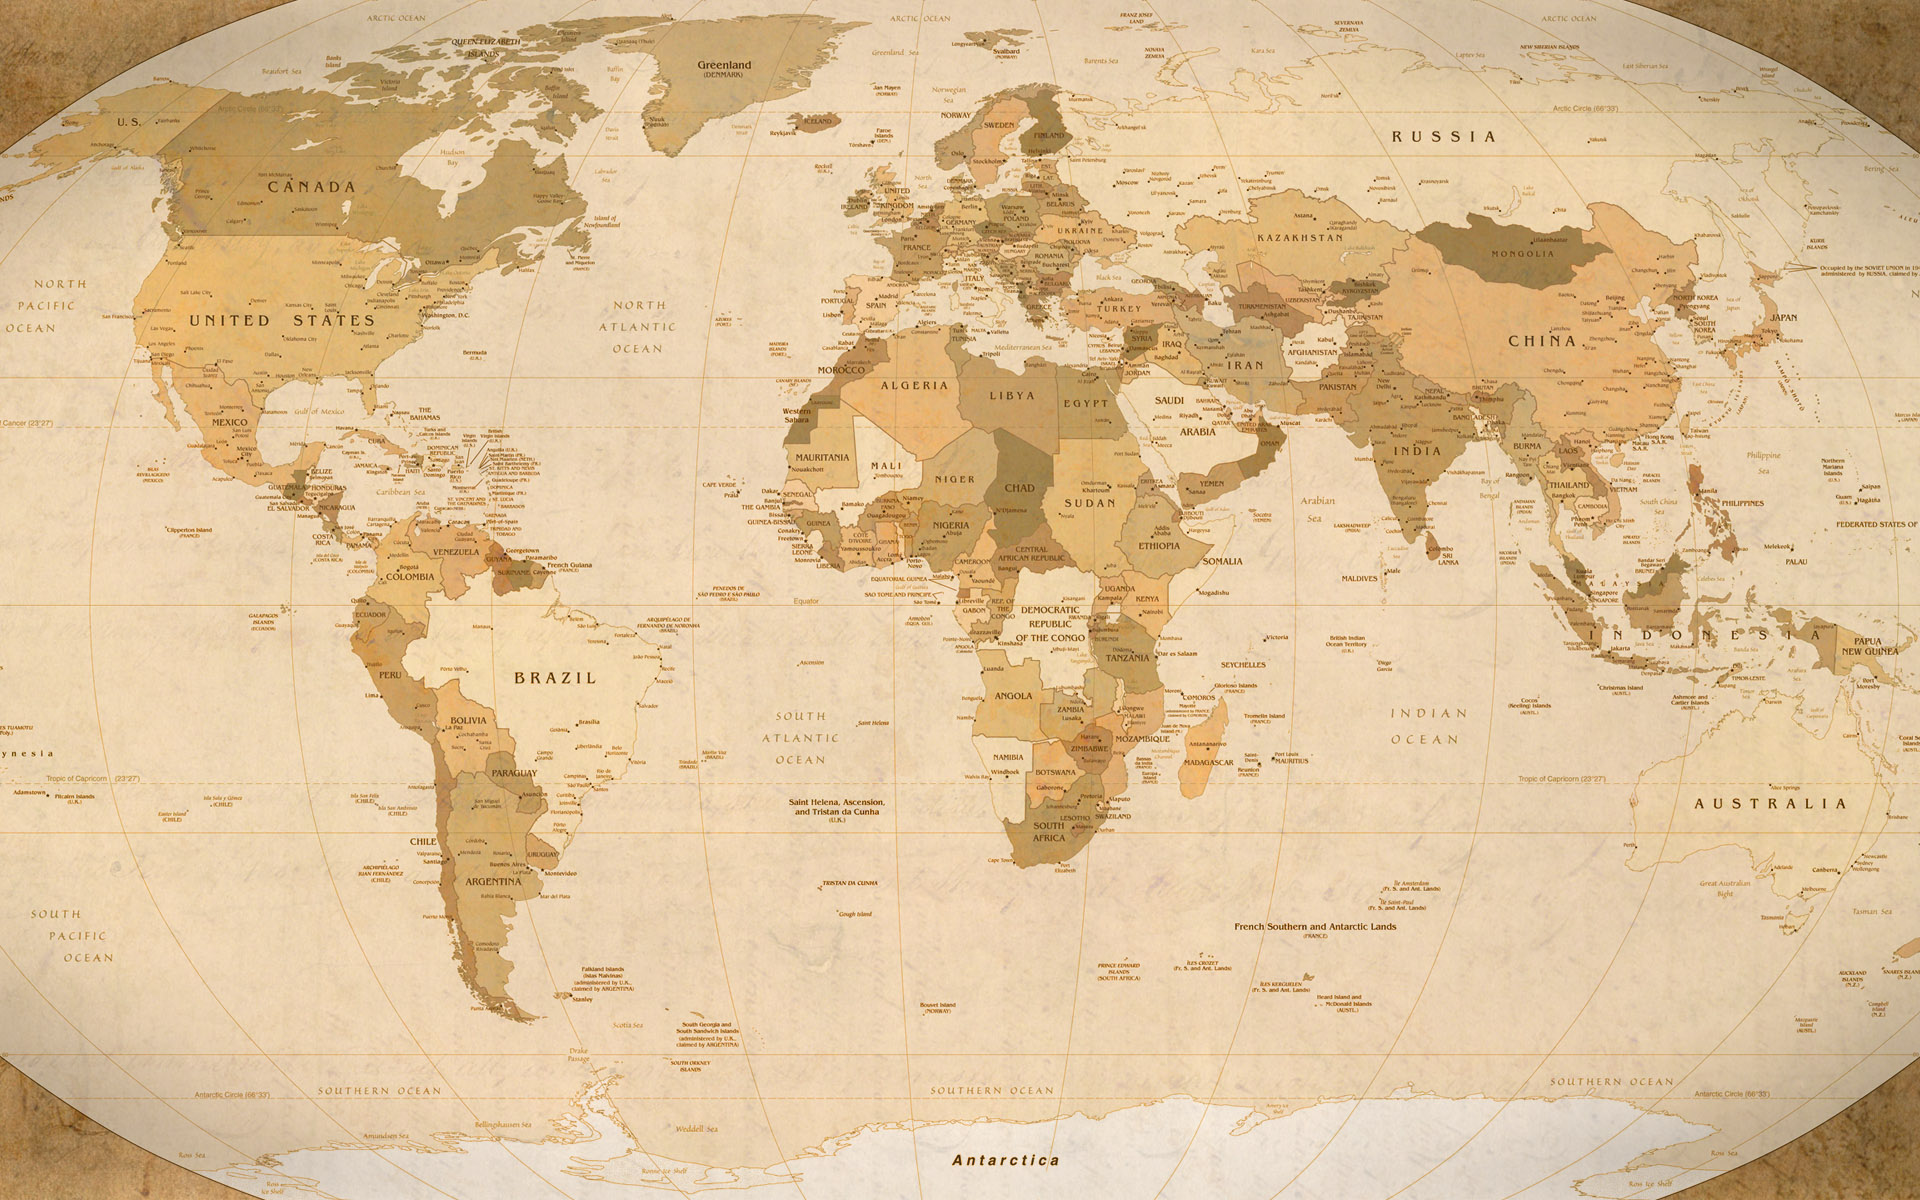 World map wallpaper 6259 1920x1200 px hdwallsource world map wallpaper 6259 gumiabroncs Images